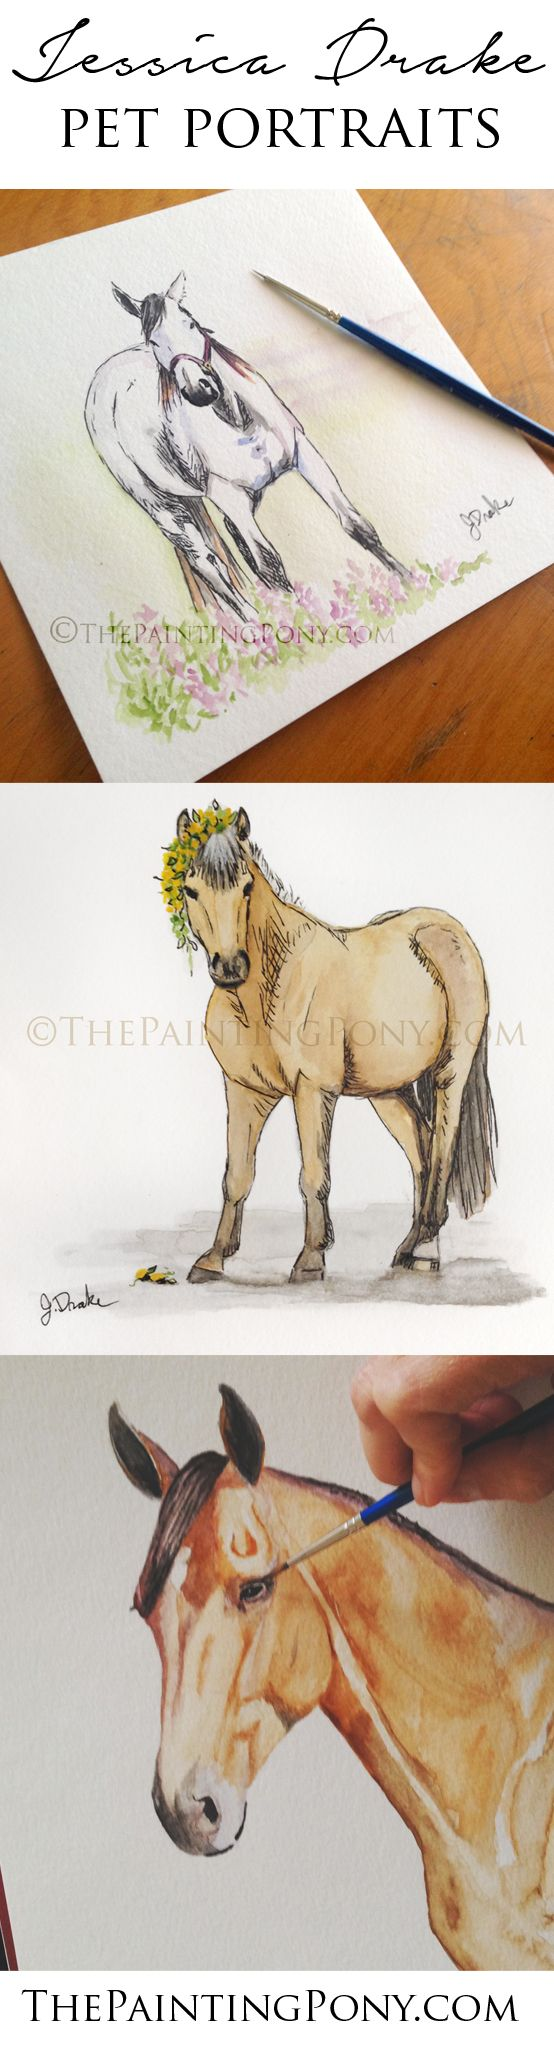 horse paintings and art by equine artist Jessica Drake. Commissioned whimsical watercolor painting and graphite pencil drawings. Make a great gift for the horse and pony lover. Wonderful keepsake memorial for a beloved animal that passed away or just because. from the hunter jumper dressage and showjumping to the cowgirl style barrel racing and reining horseback riding enthusiast horse owner. Artwork is always a good idea.